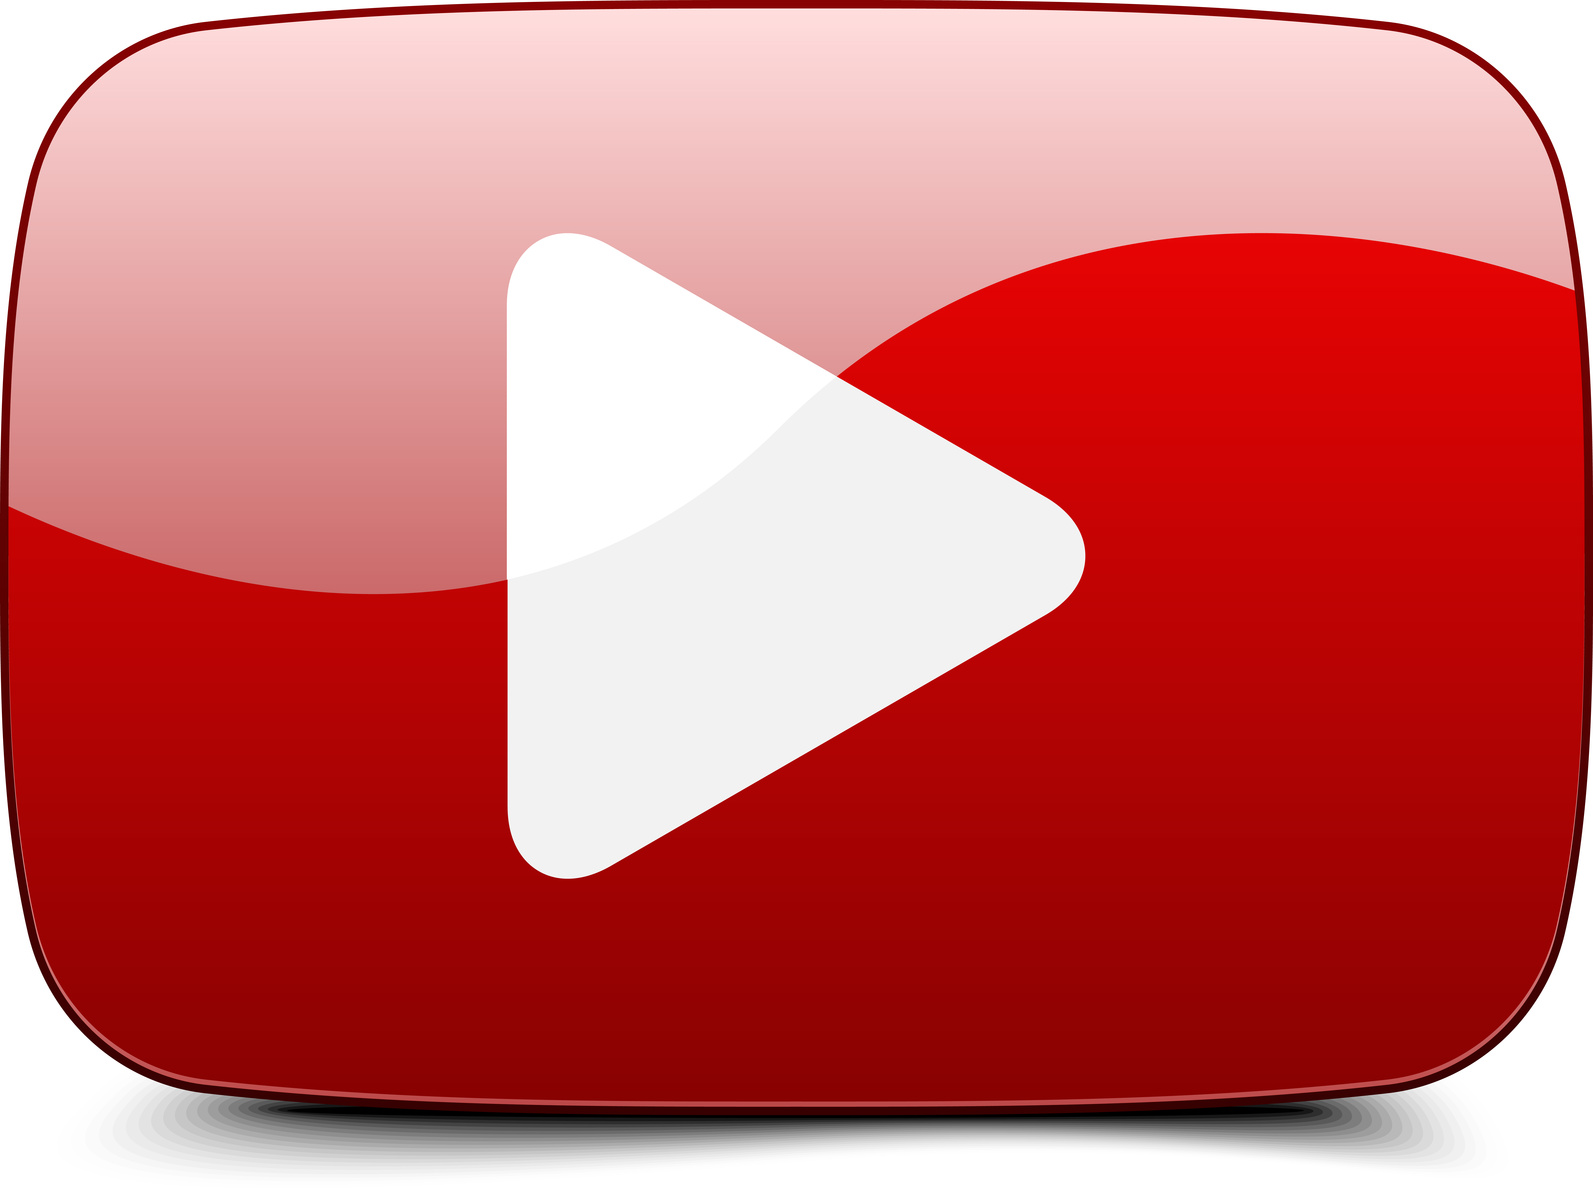 Free Youtube Play Button, Download Free Clip Art, Free Clip.